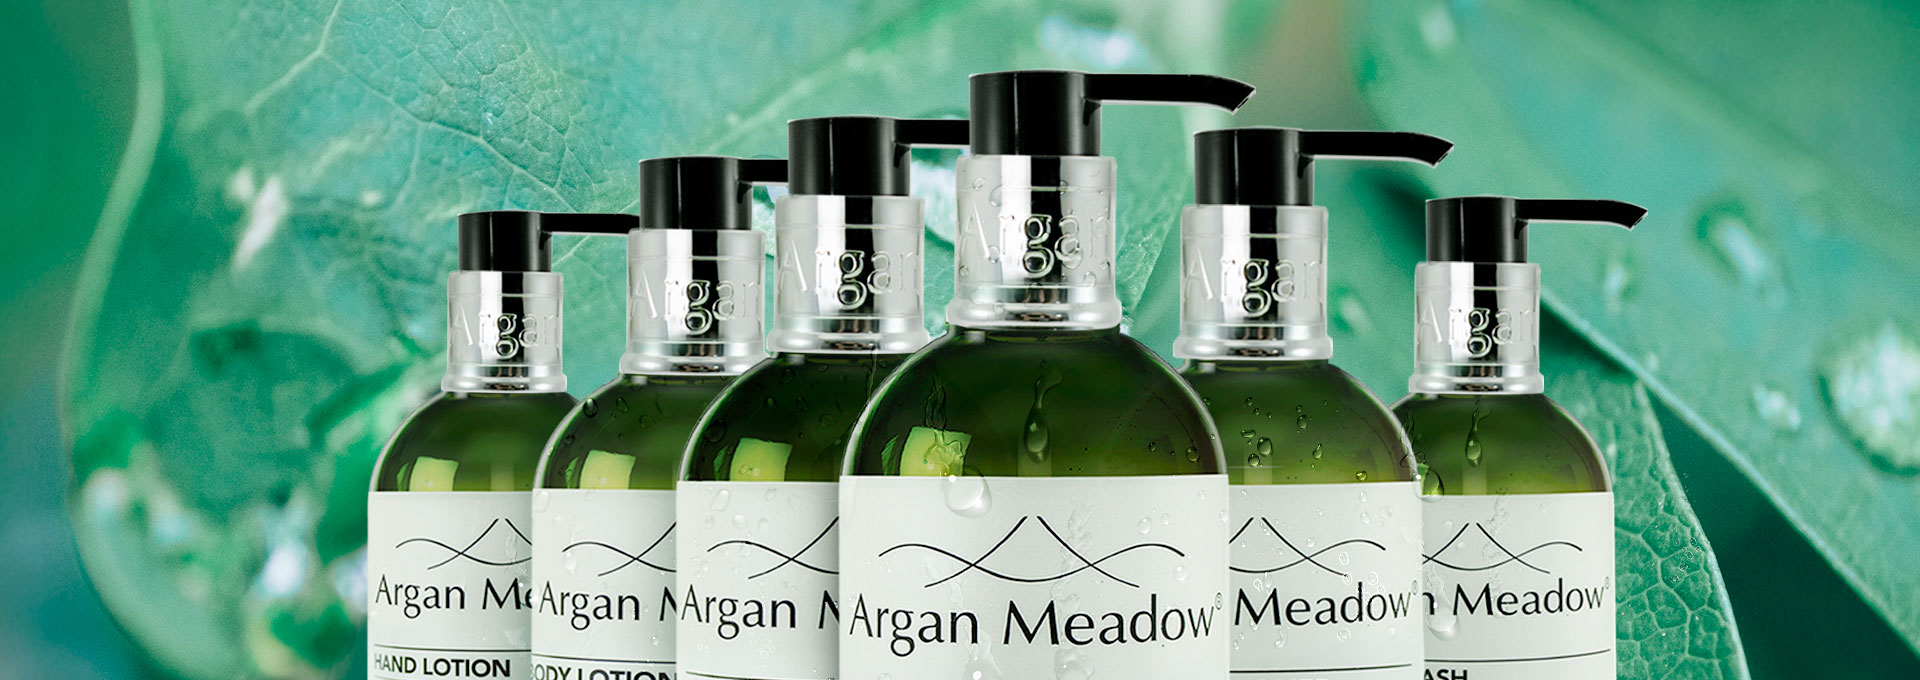 Argan Meadow LANDE